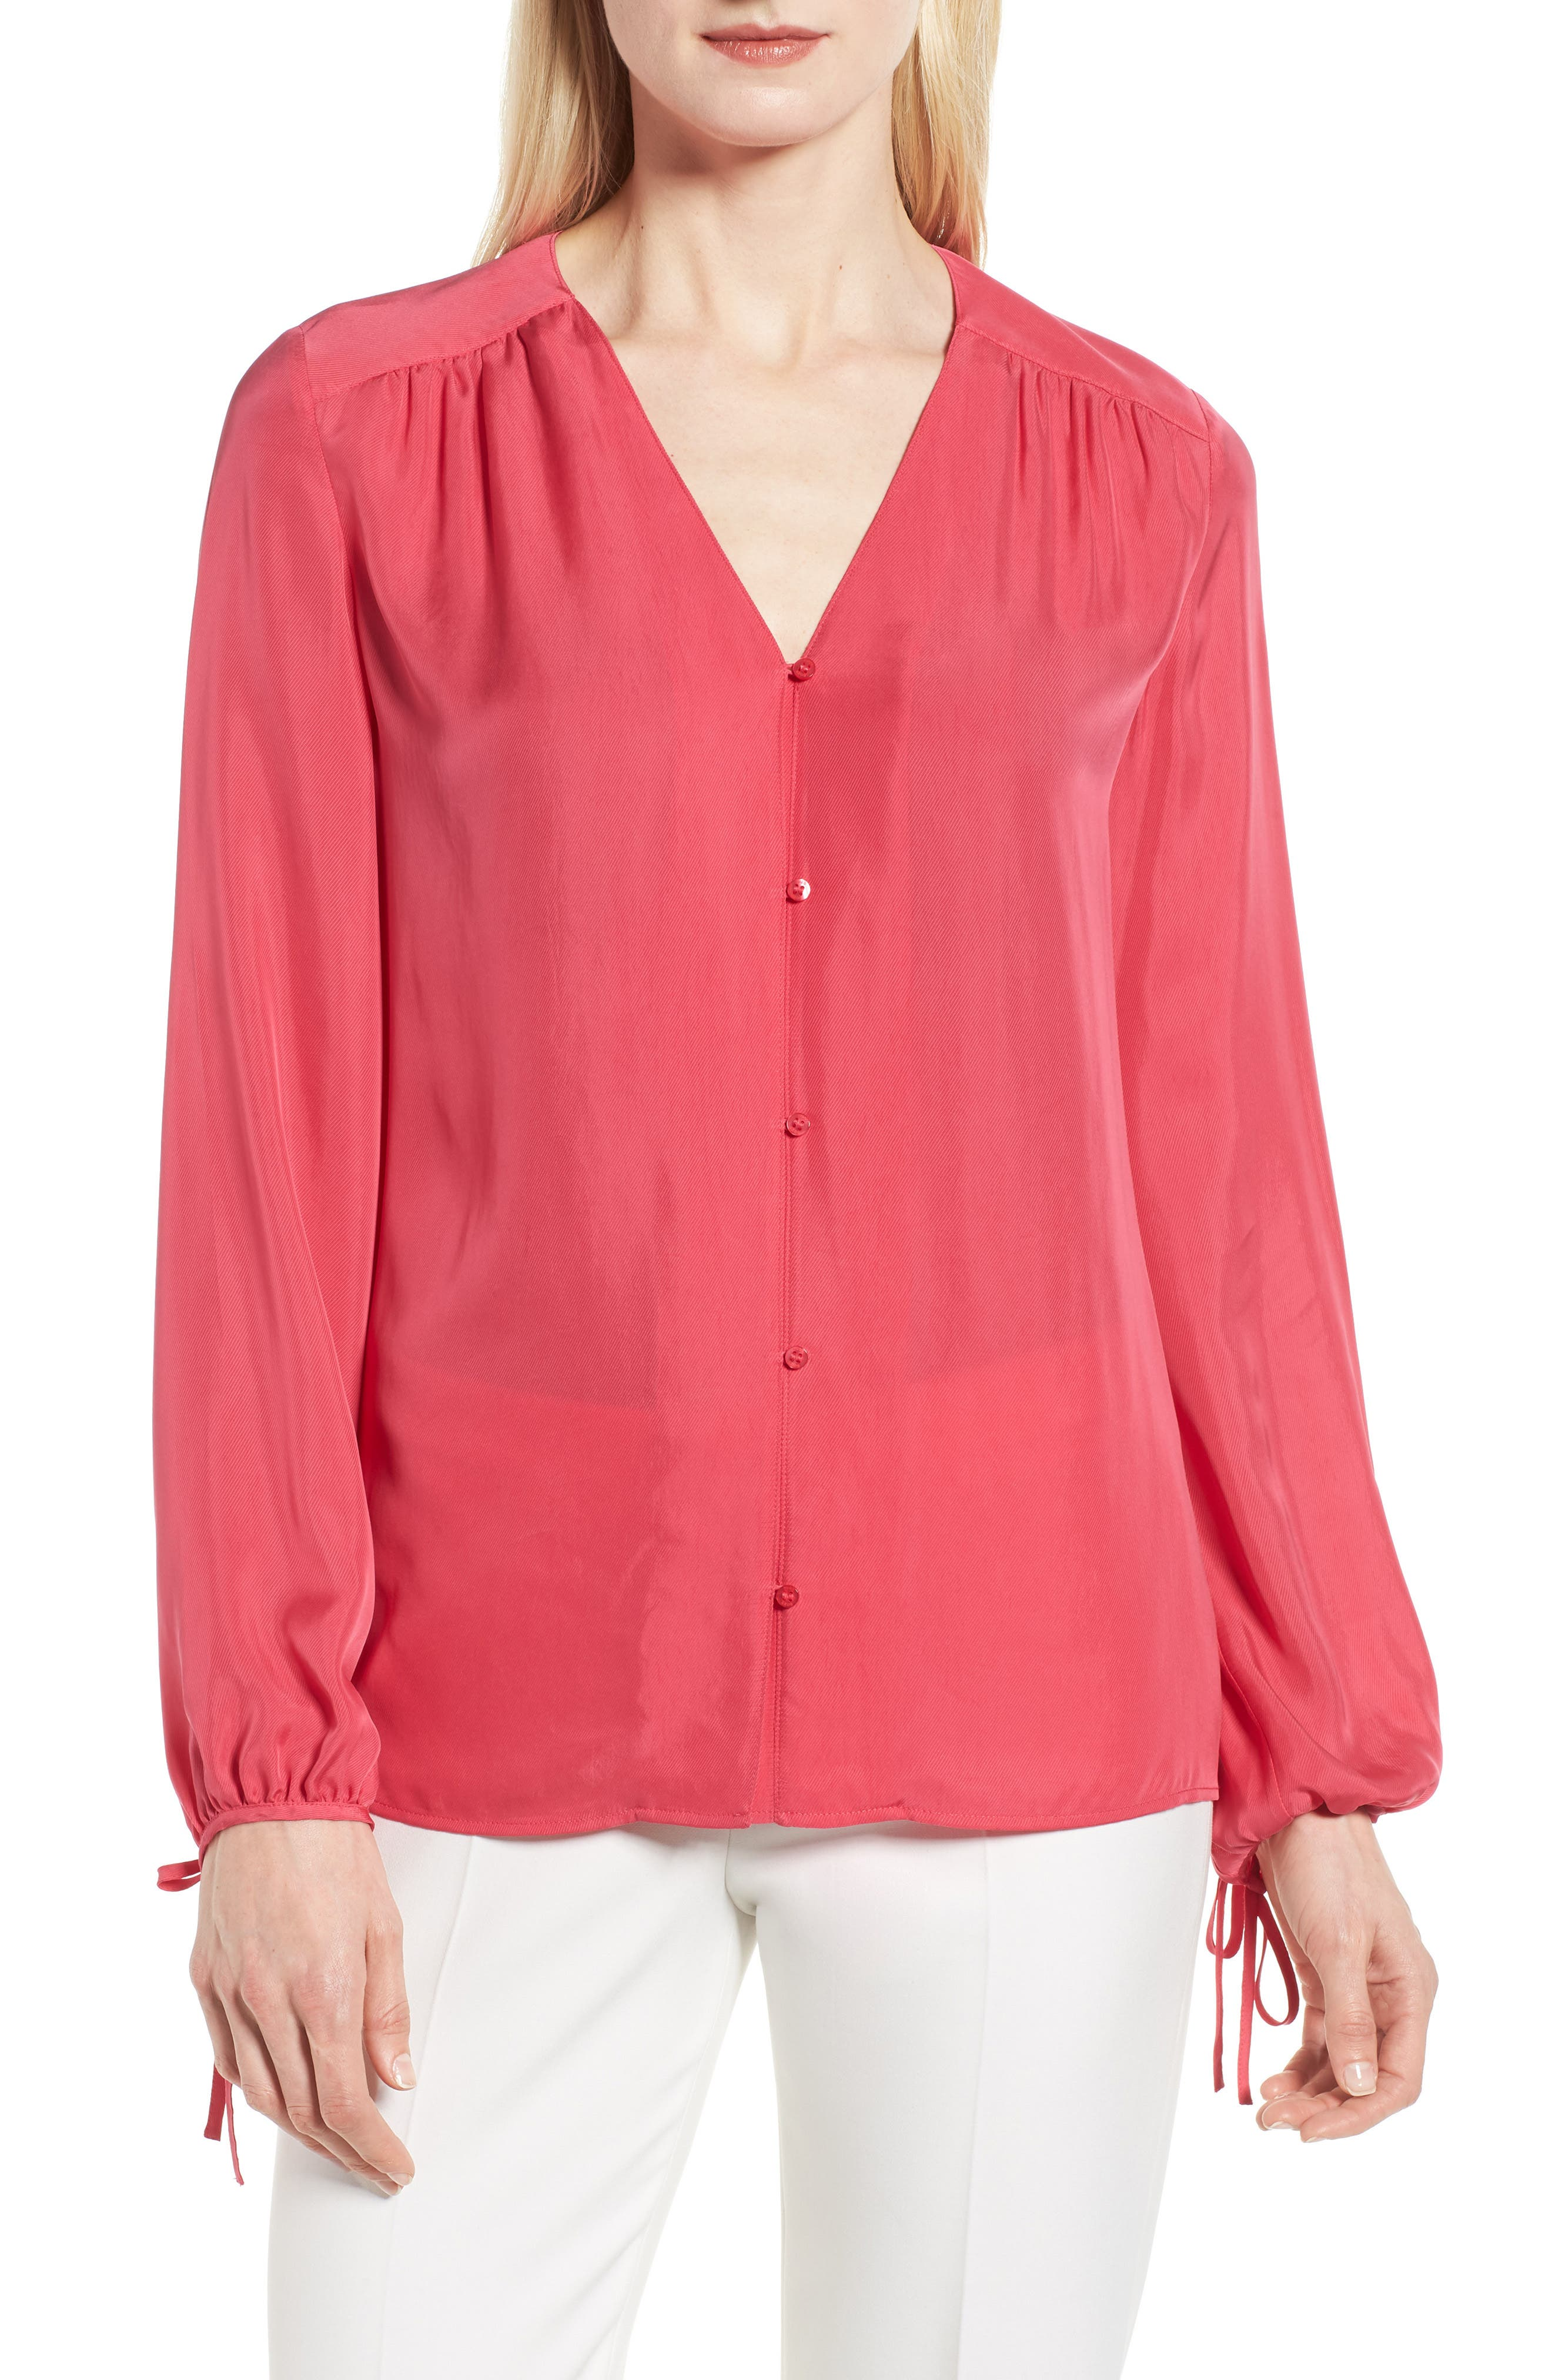 Rosalia Blouse,                             Main thumbnail 1, color,